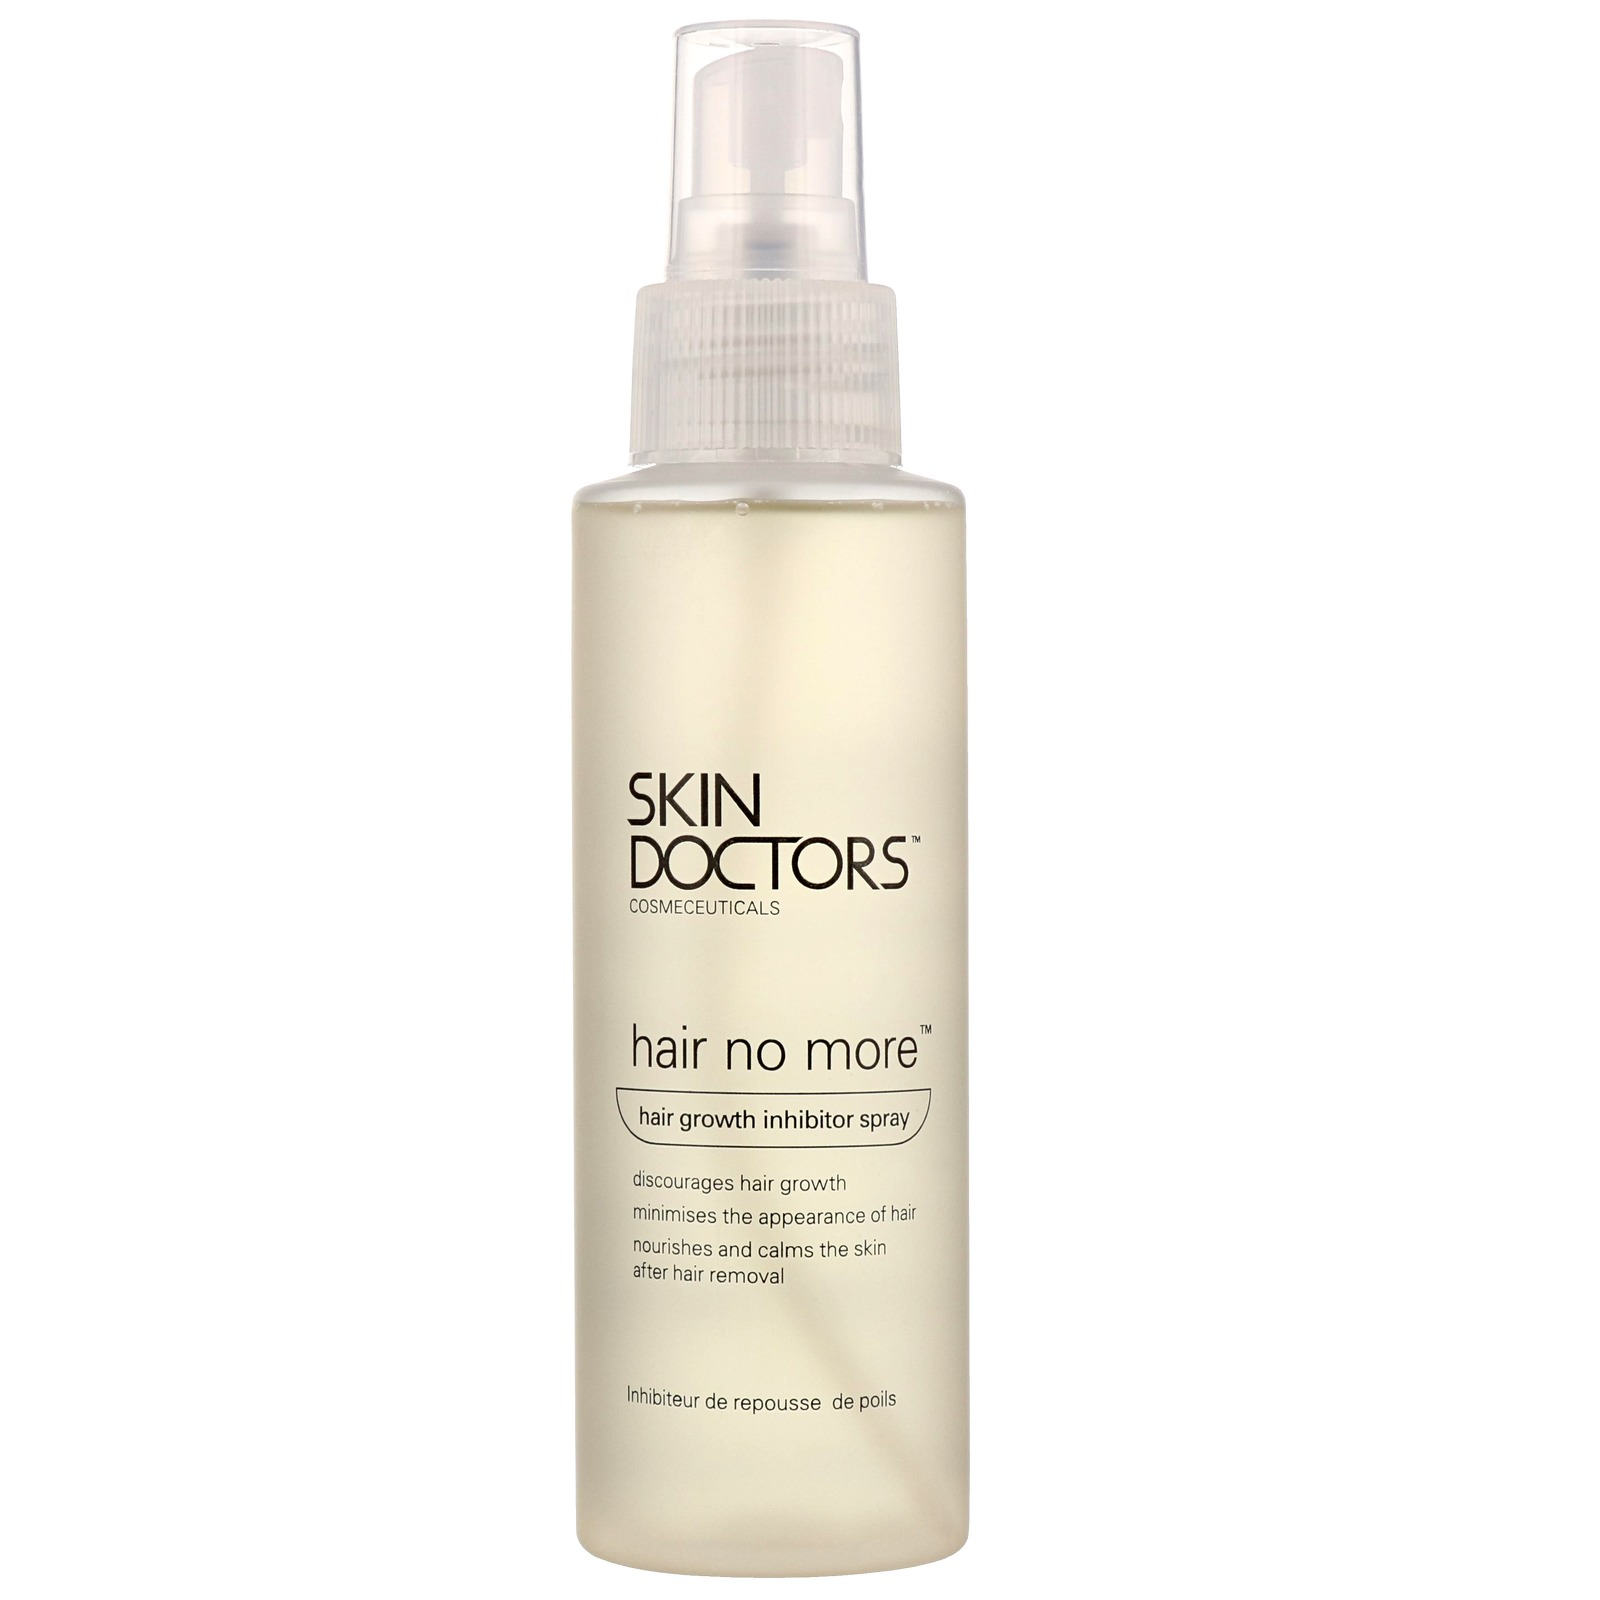 Skin Doctors Body Hair No More Inhibitor Spray 120ml